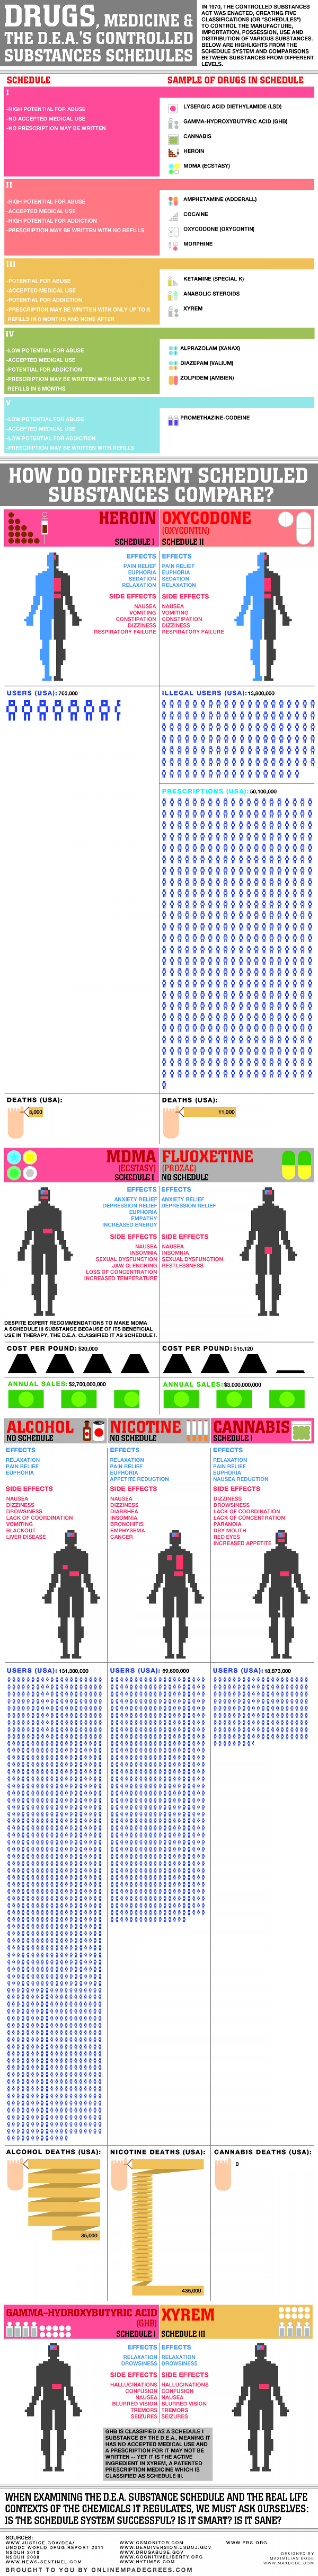 Drugs, Medicine and the D.E.A.'s Controlled Substance Schedules Infographic